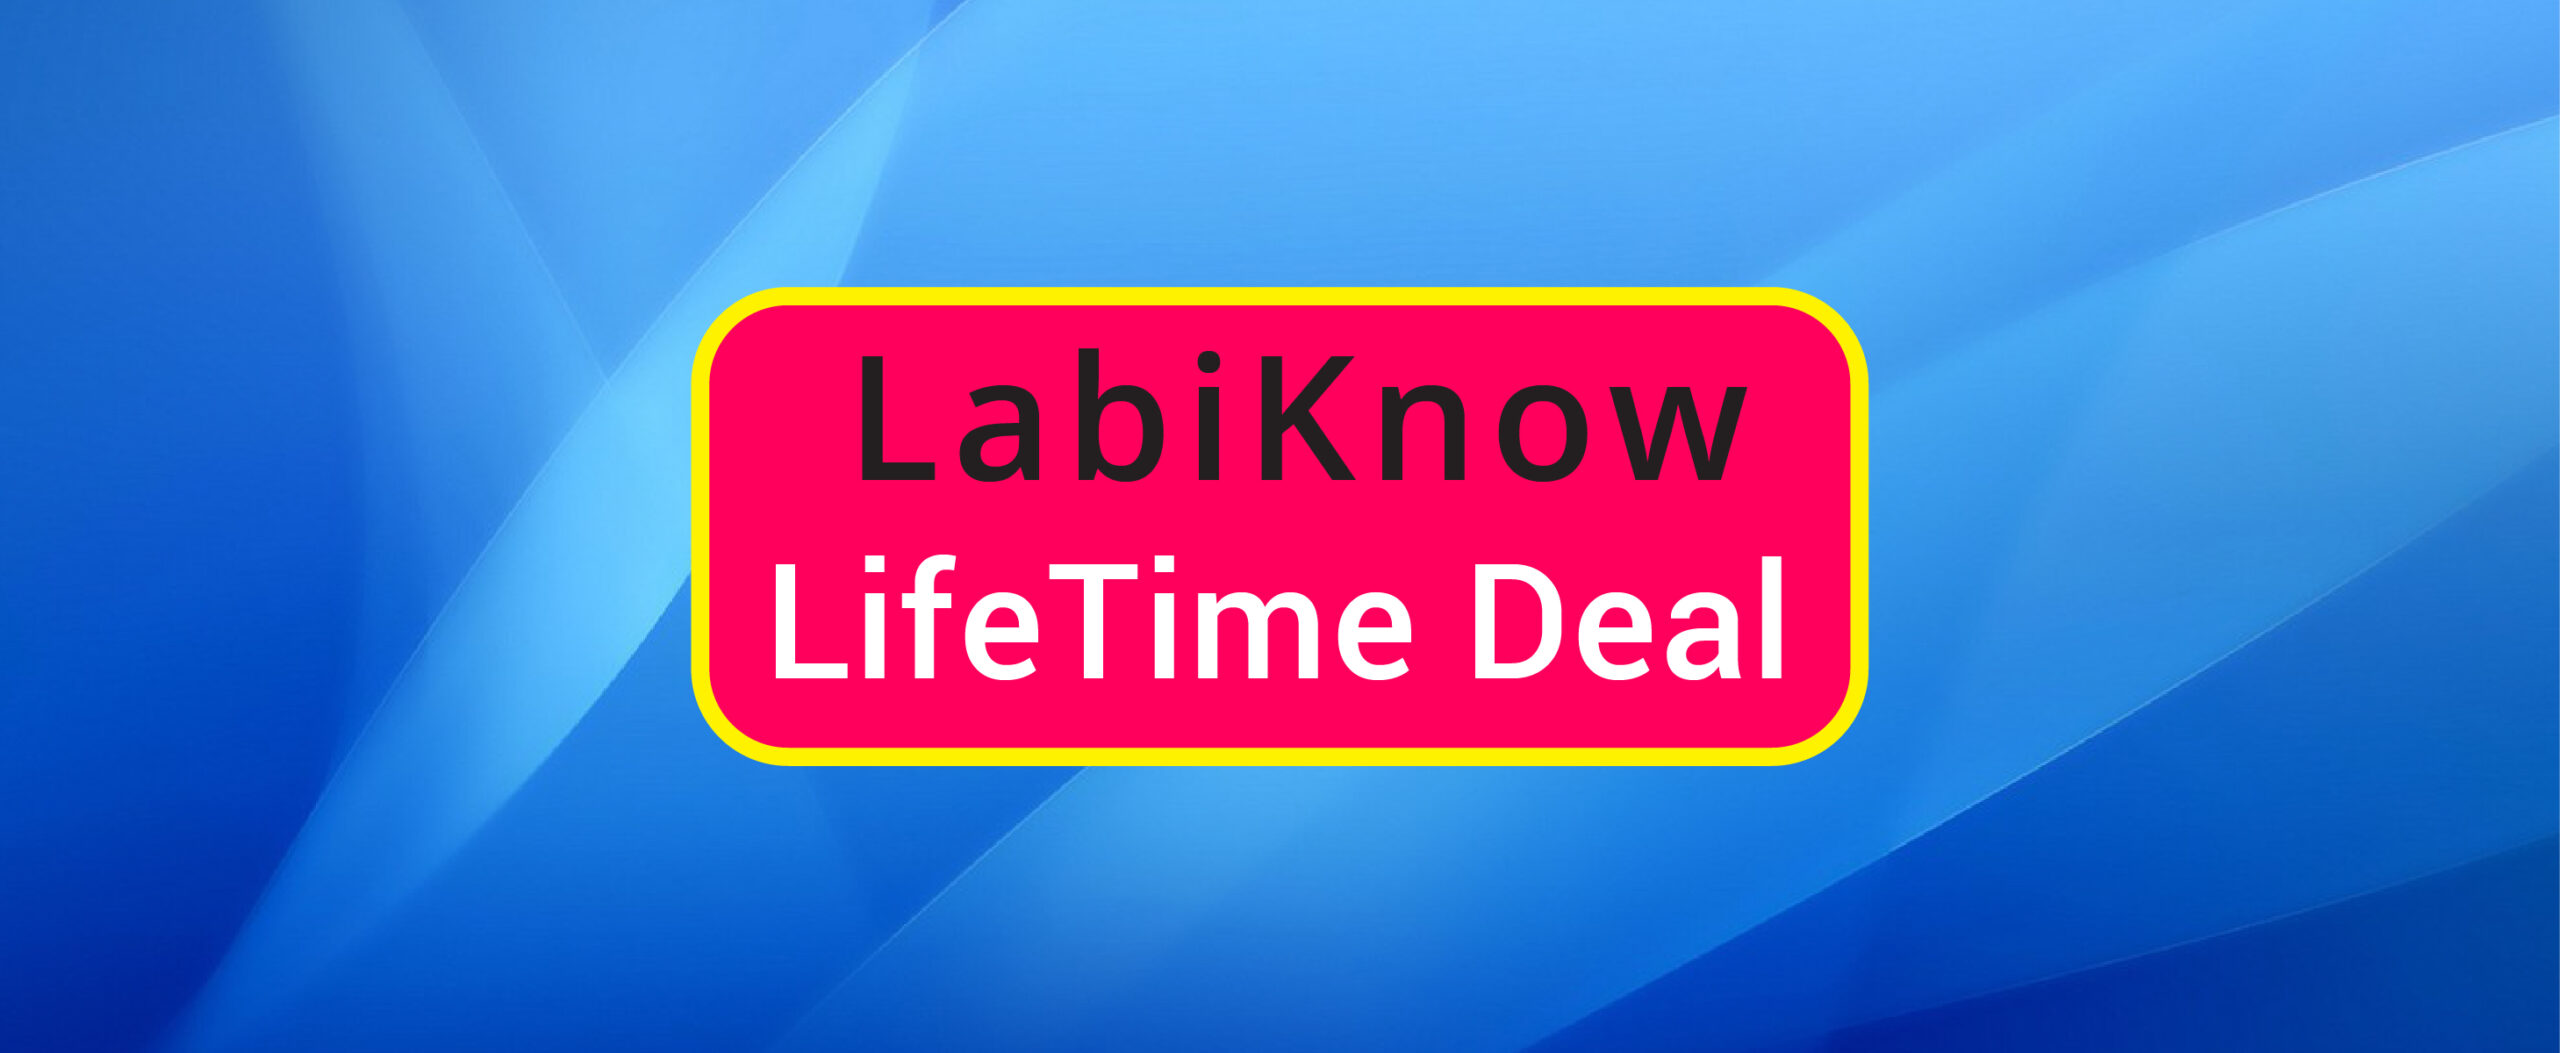 LabiKnow Reviews, Features And Lifetime Deal 2021